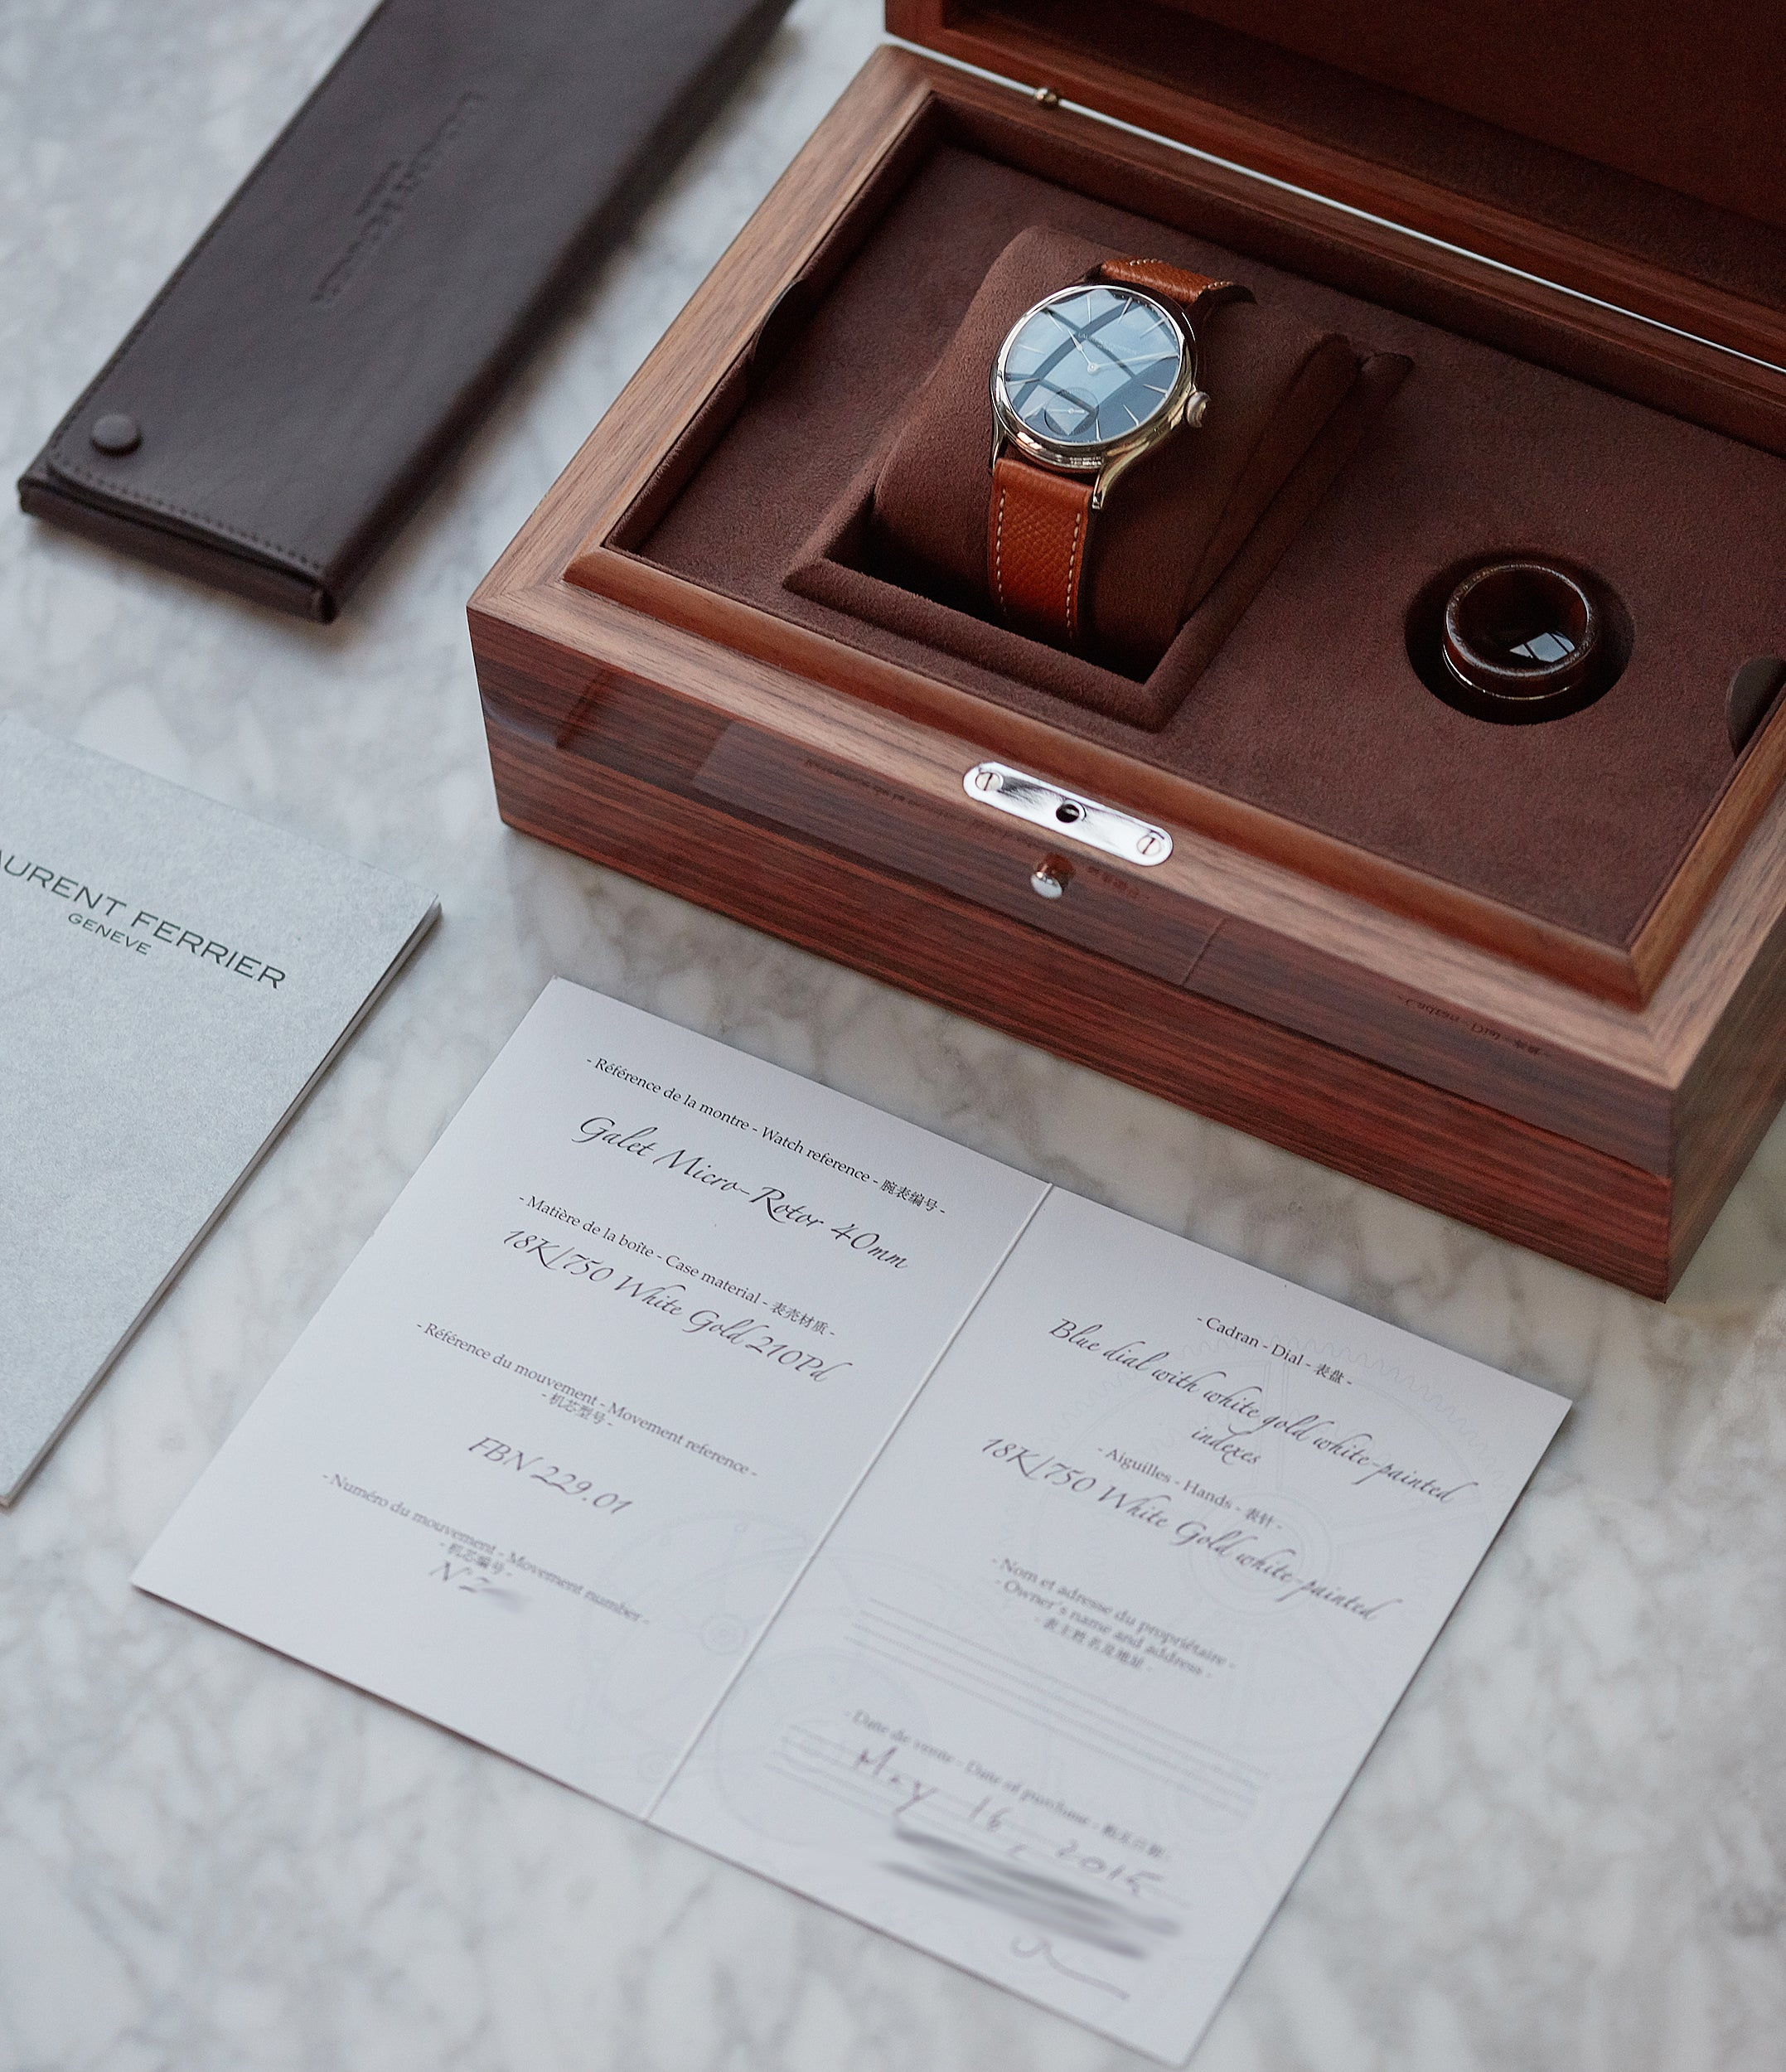 full set Laurent Ferrier Galet Micro-Rotor LF229.01 blue dial white gold watch for sale online at A Collected Man London UK approved seller of independent watchmaker Laurent Ferrier